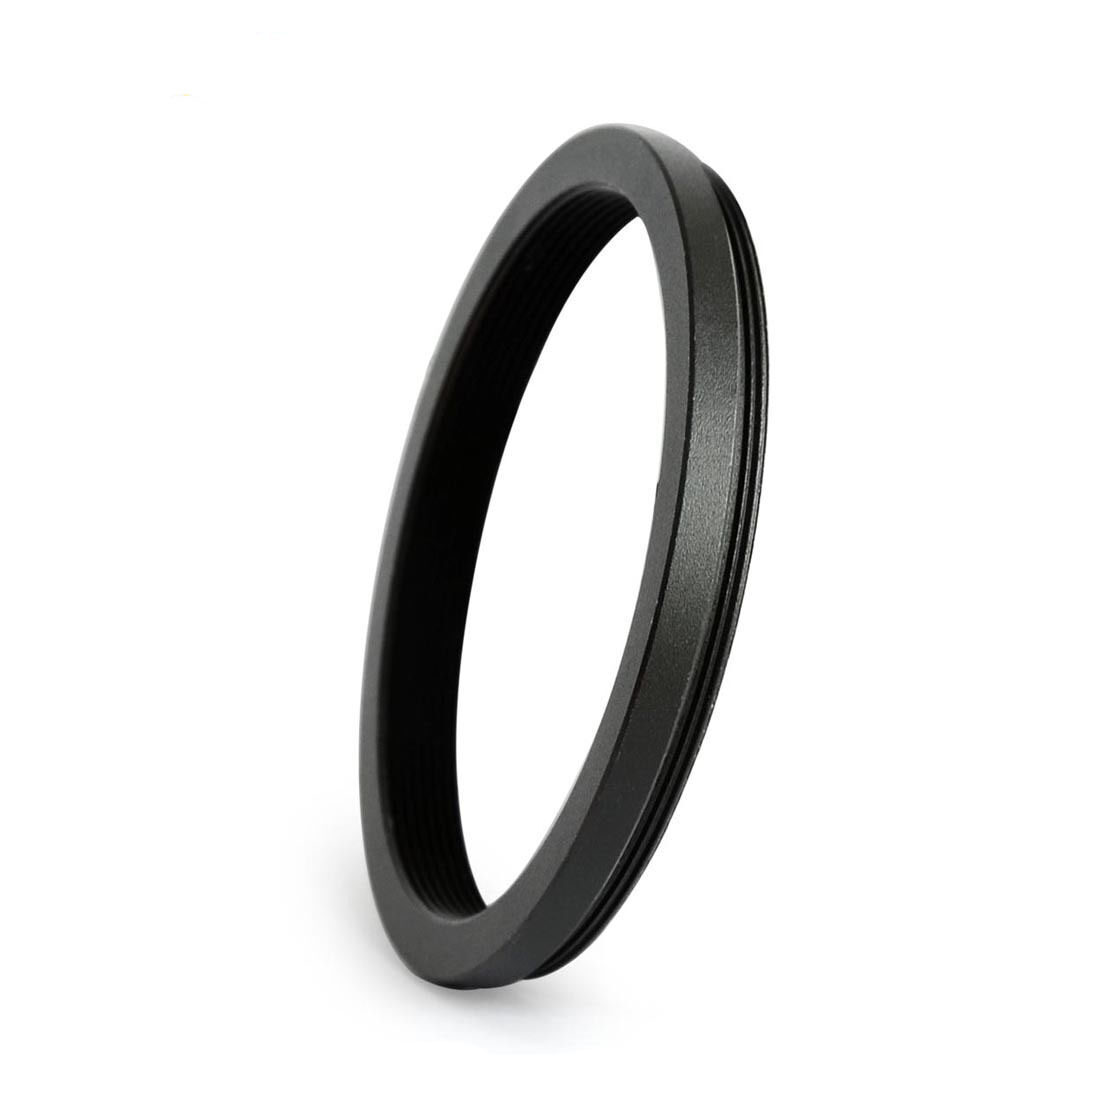 Step UP Ring 55 - 72 mm Lens Filter 55 to 72